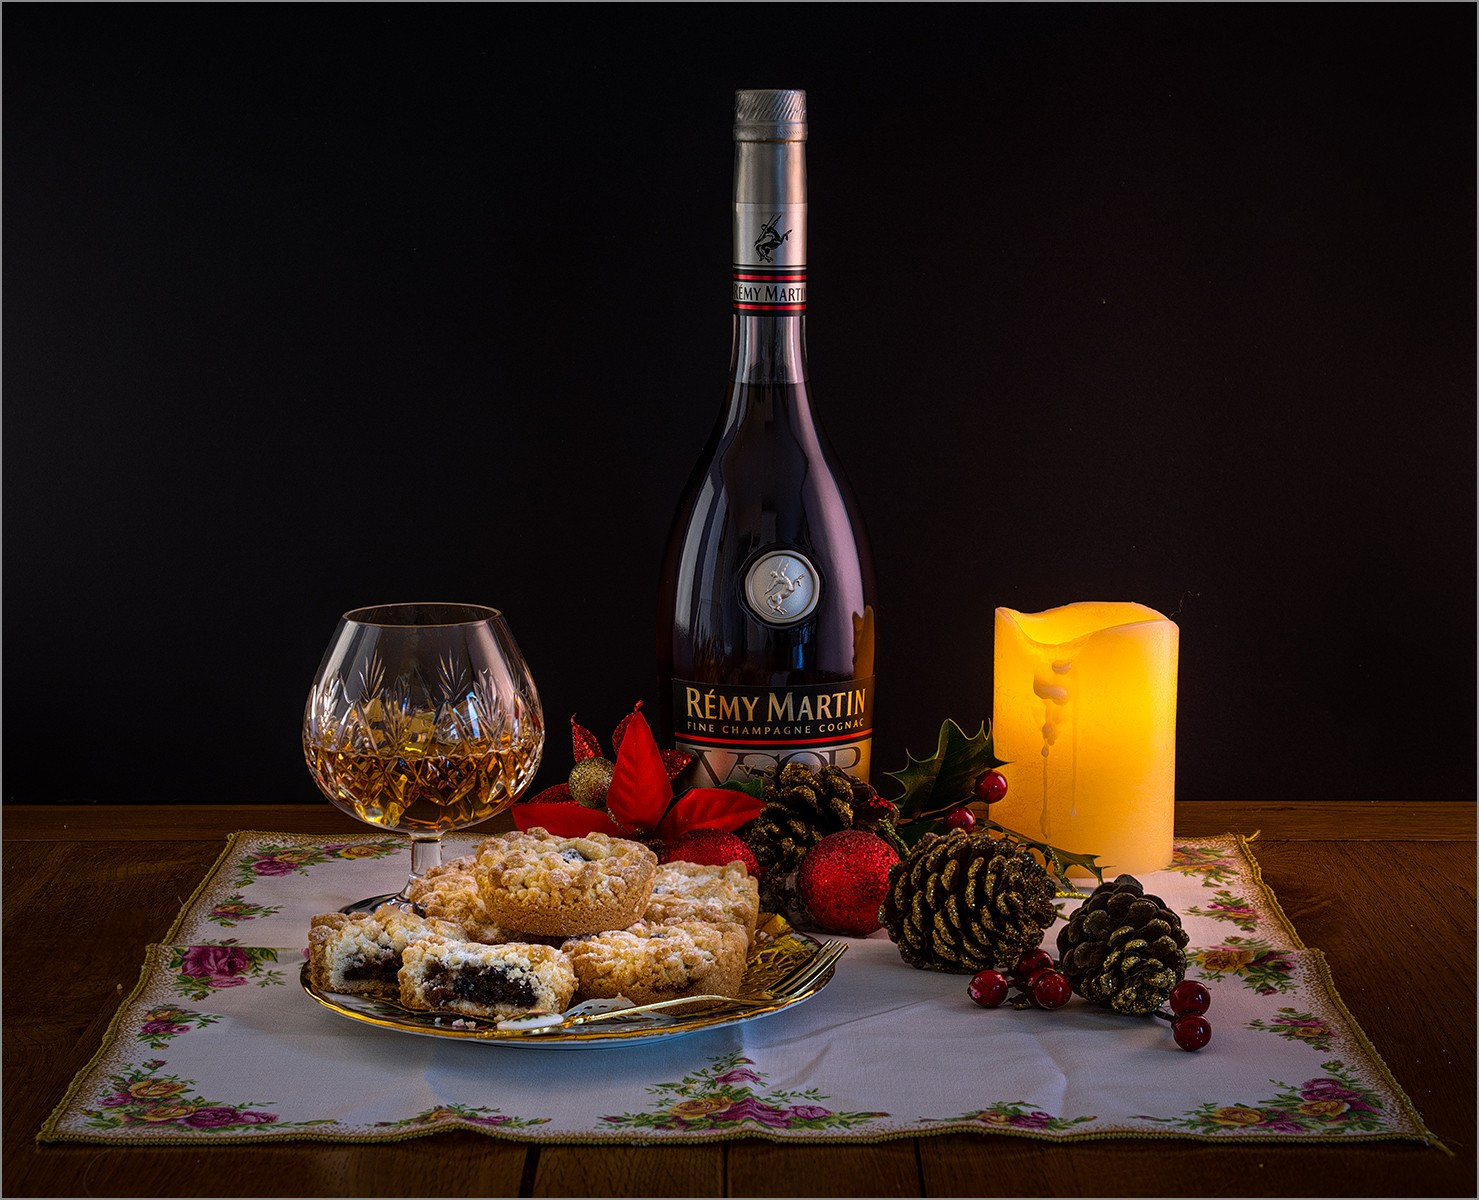 4. Mince Pies With Brandy